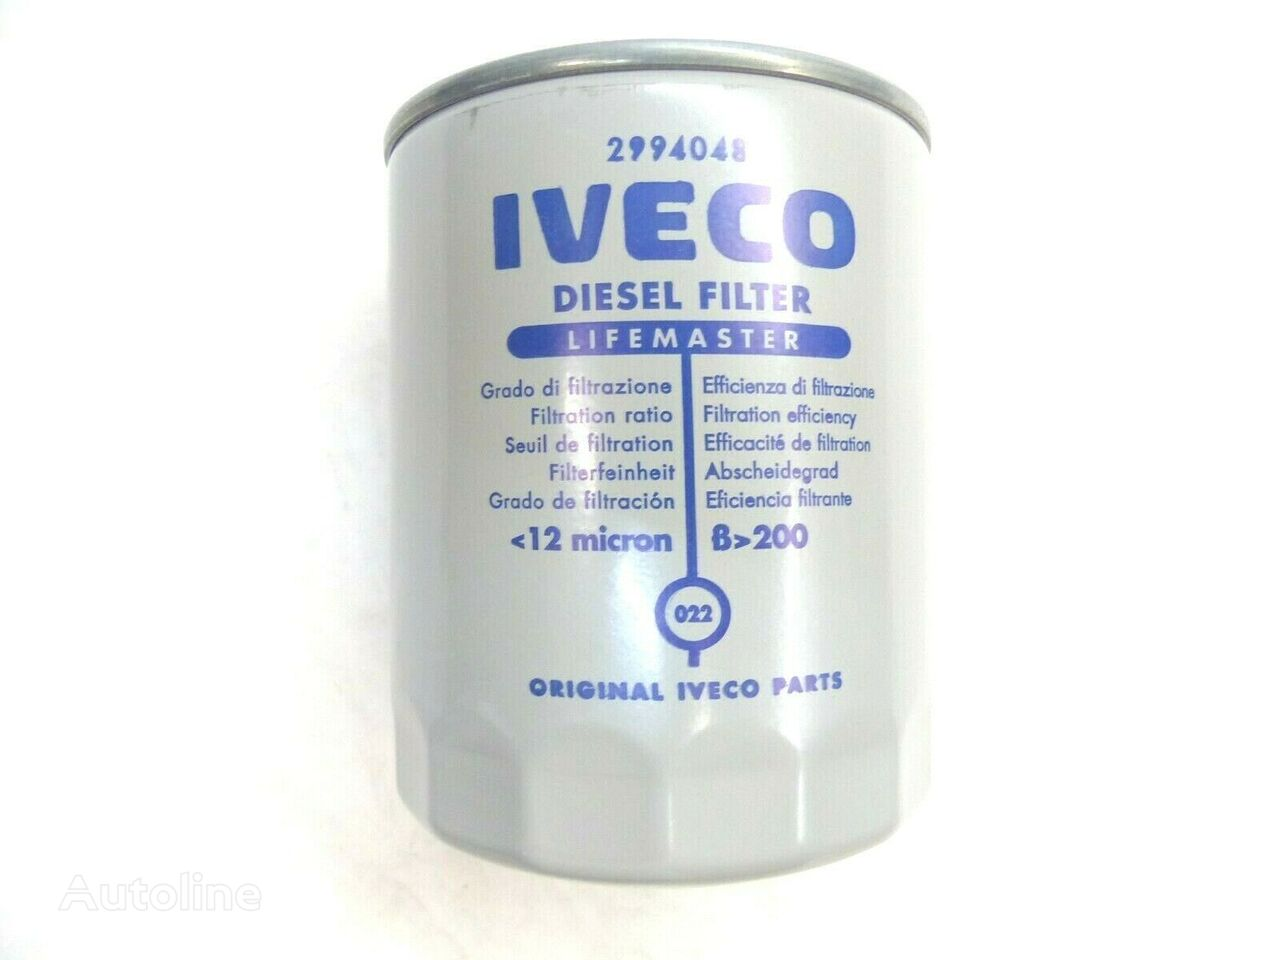 new IVECO (2994048) fuel filter for IVECO IRISBUS  bus